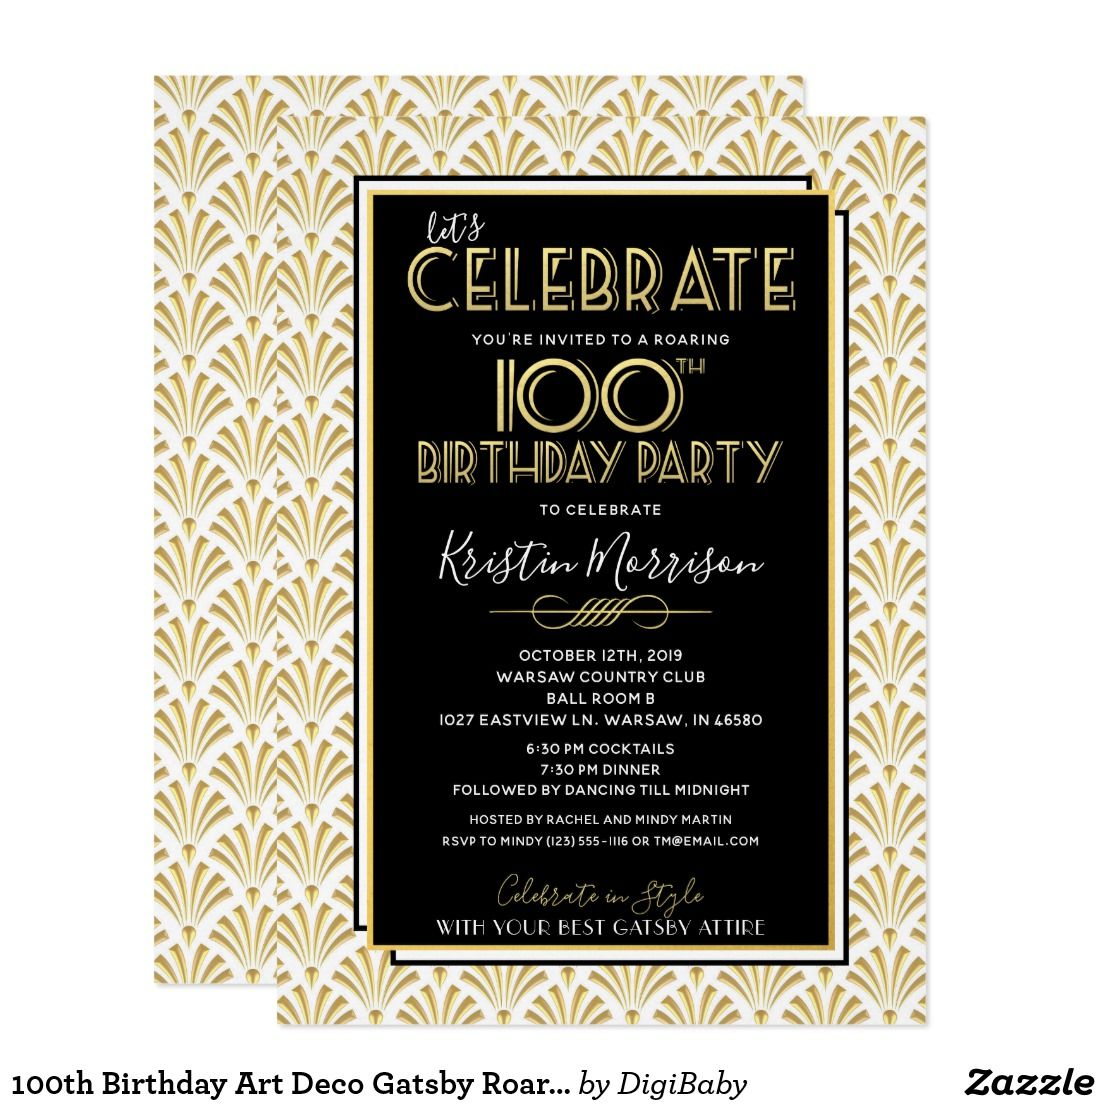 100th Birthday Art Deco Gatsby Roaring 1920s Party Invitation Zazzle Com 1920s Party Invitations Roaring 1920s Party Art Deco Party